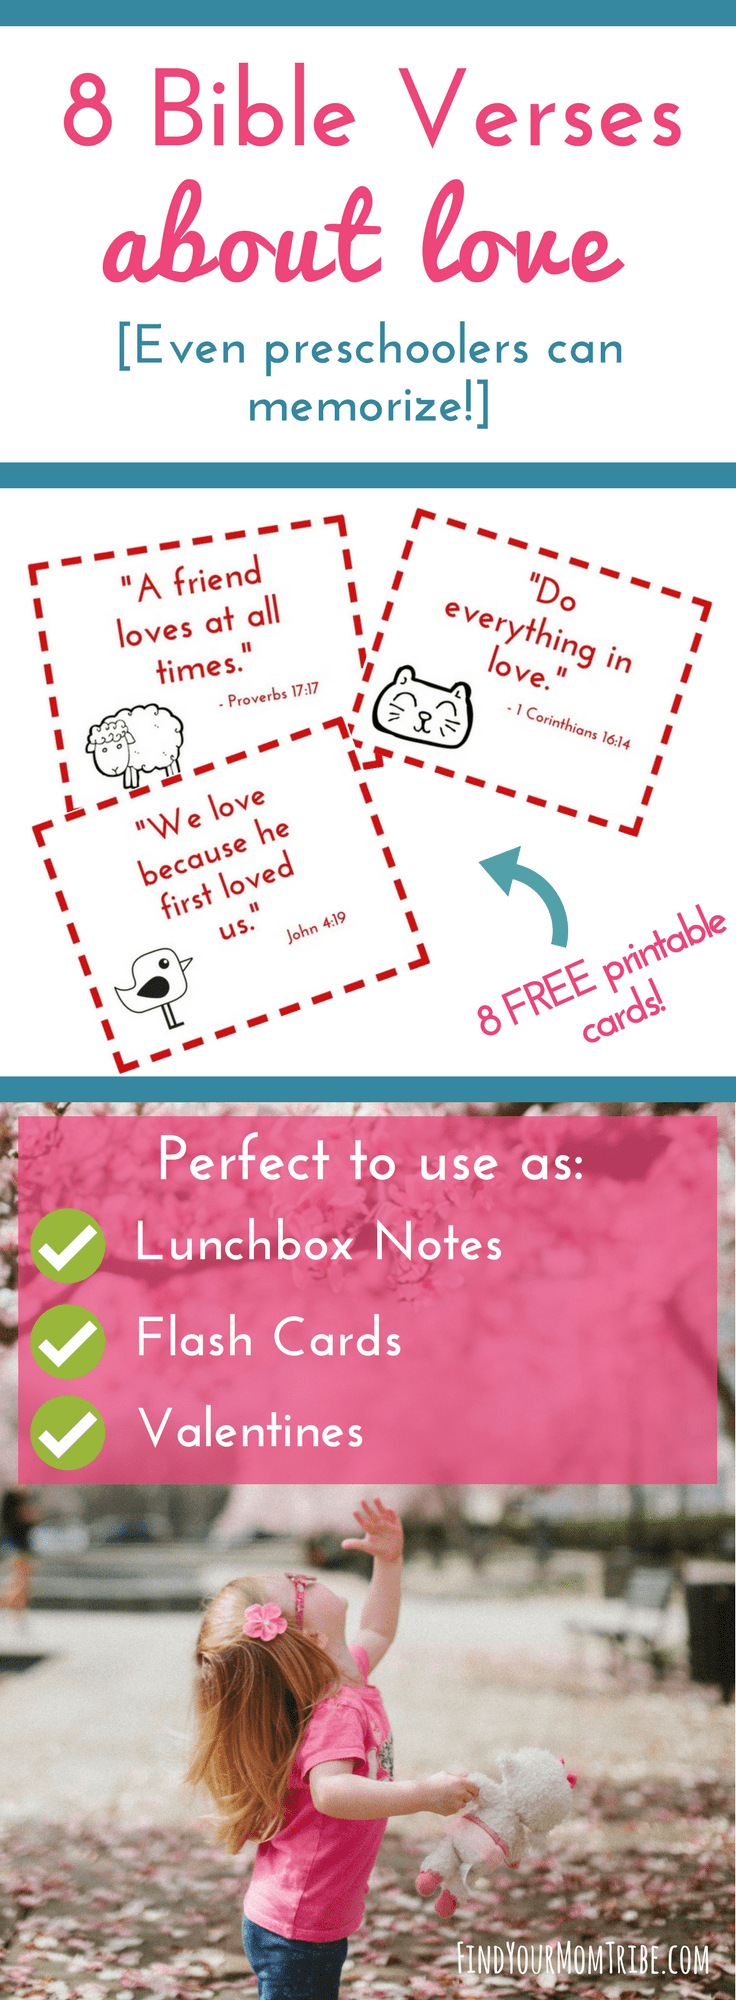 Simple and easy-to-memorize Bible verses about LOVE (even preschoolers can memorize!) Plus grab your free printable scripture cards perfect to use as lunchbox notes, thinking-of-you cards, Valentines, or flash cards. #freeprintables #memoryverses #valentinesday #valentinesdayprintables #freebie #scripture #Biblestudy #Bibleactivitiesforkids